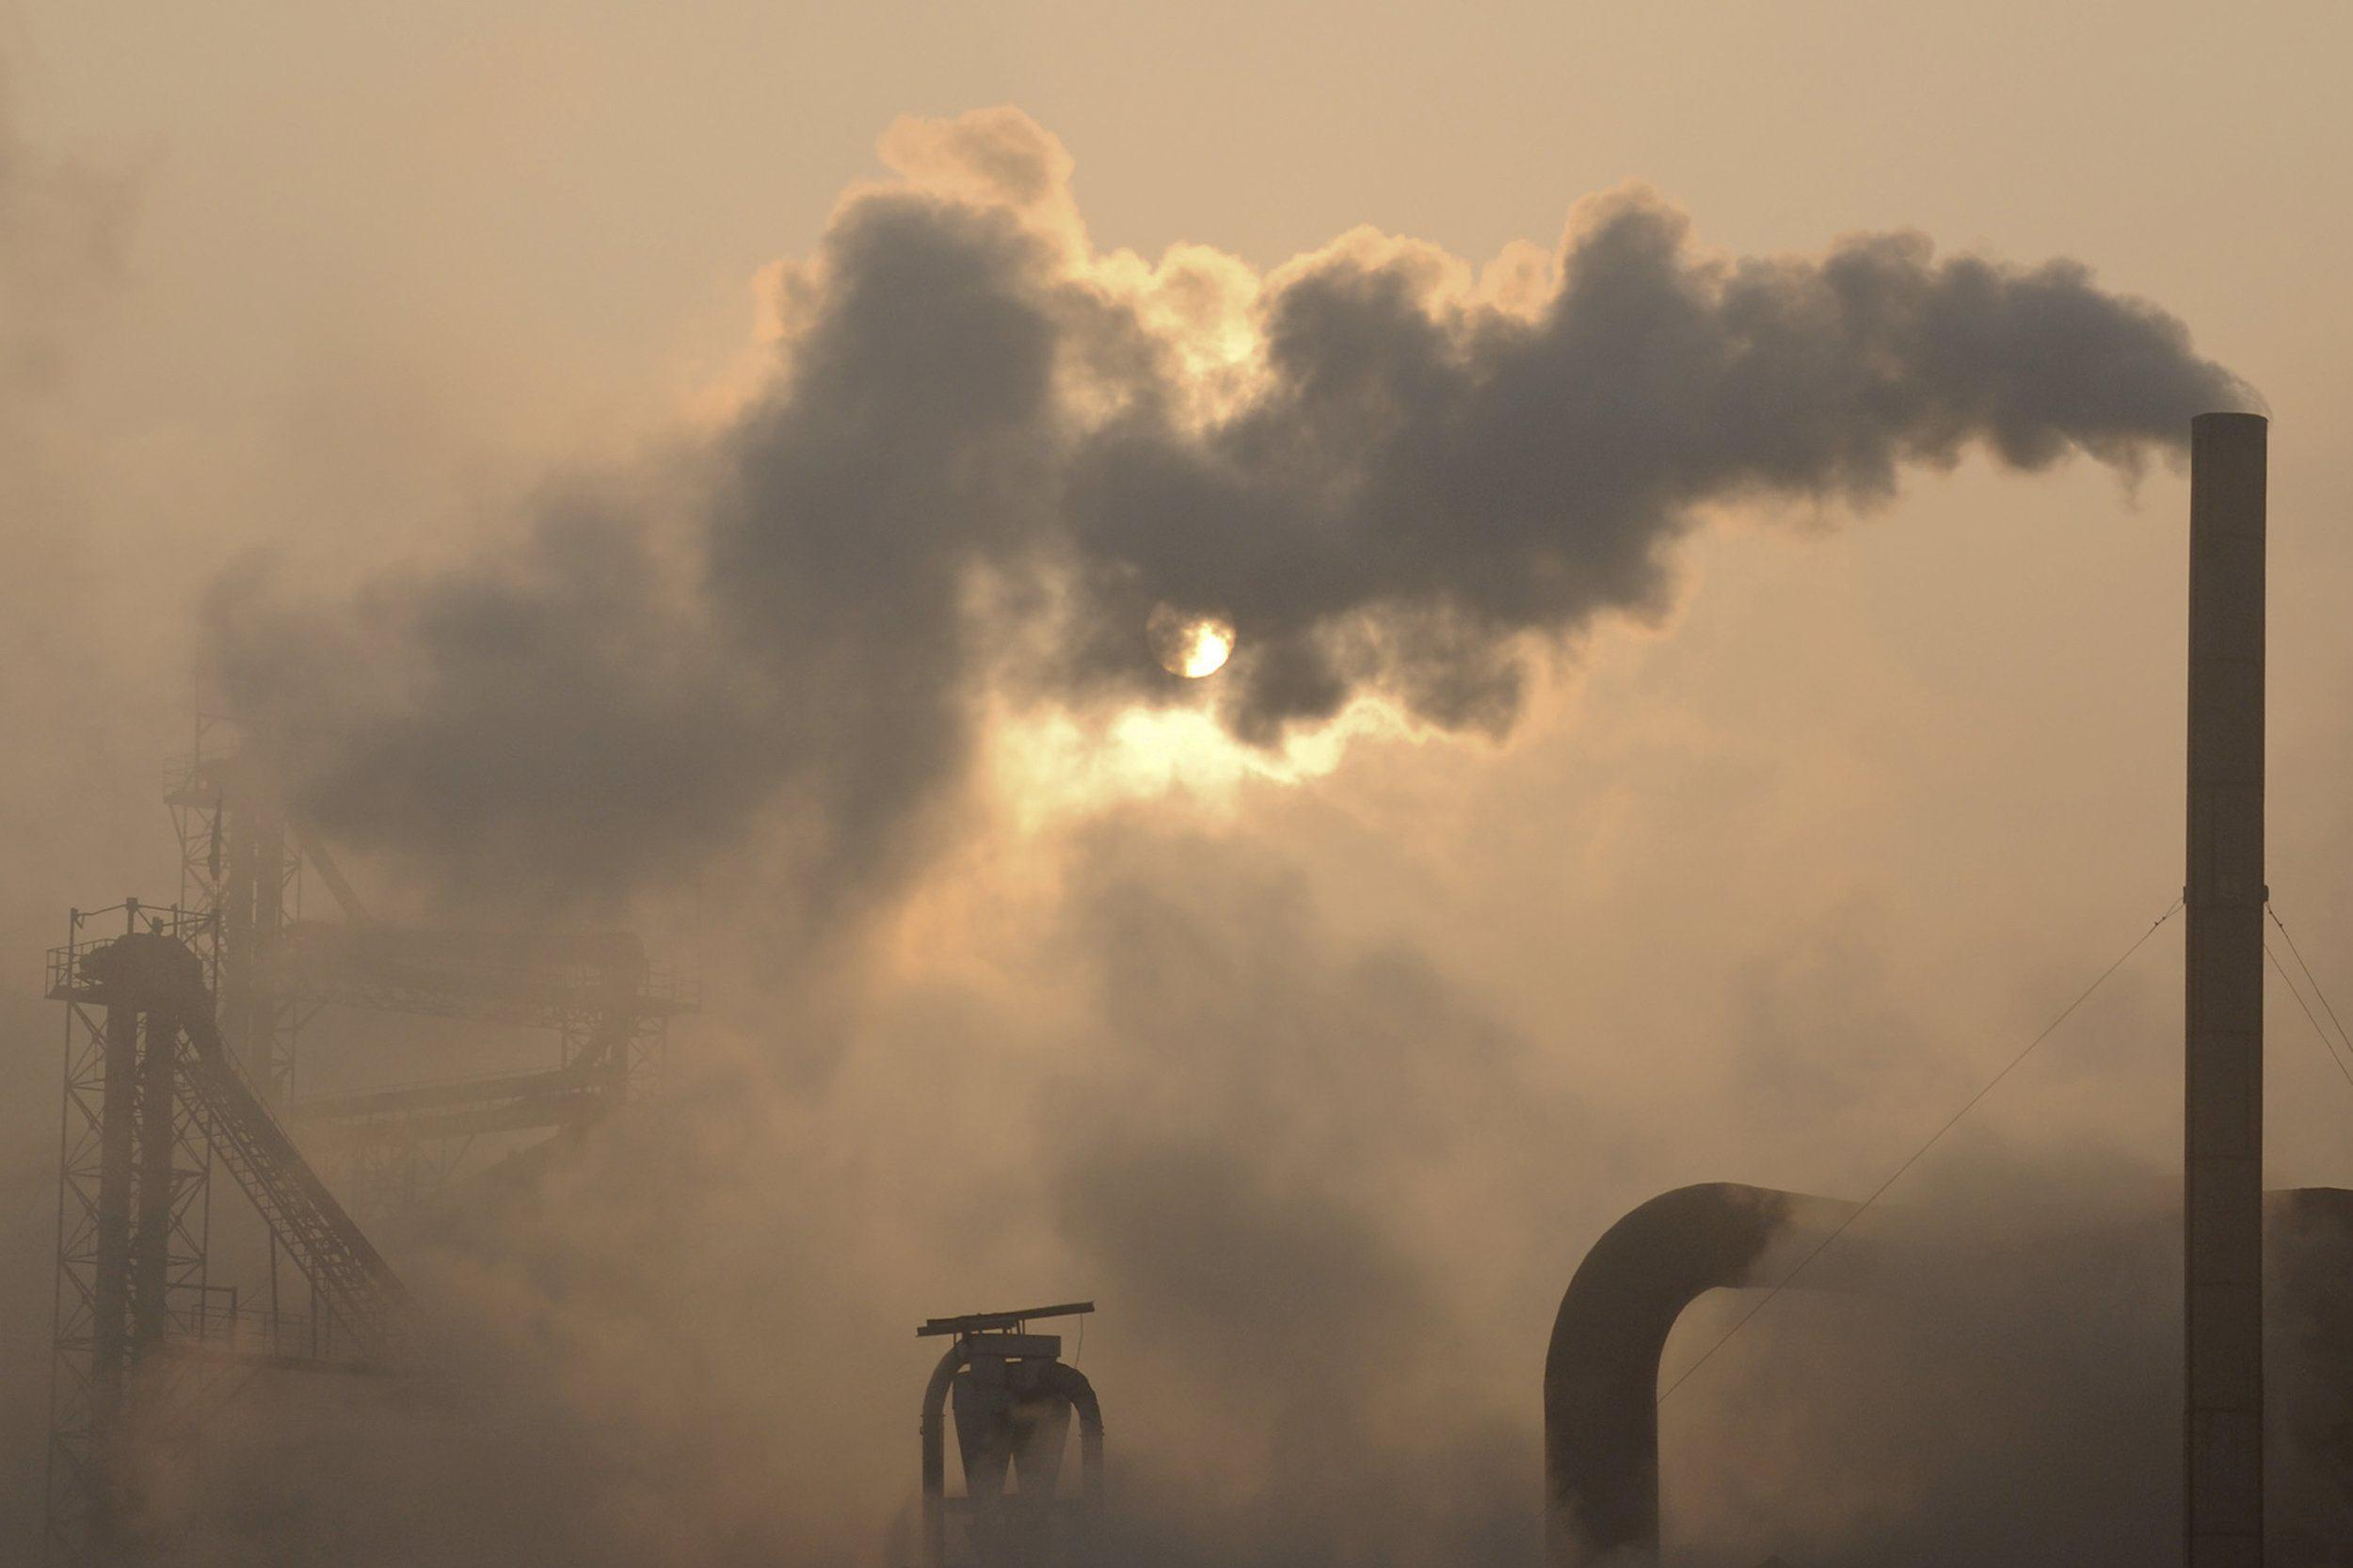 Image: Smoke rises from the chimneys of a cement plant in eastern China's Shandong province in 2013.